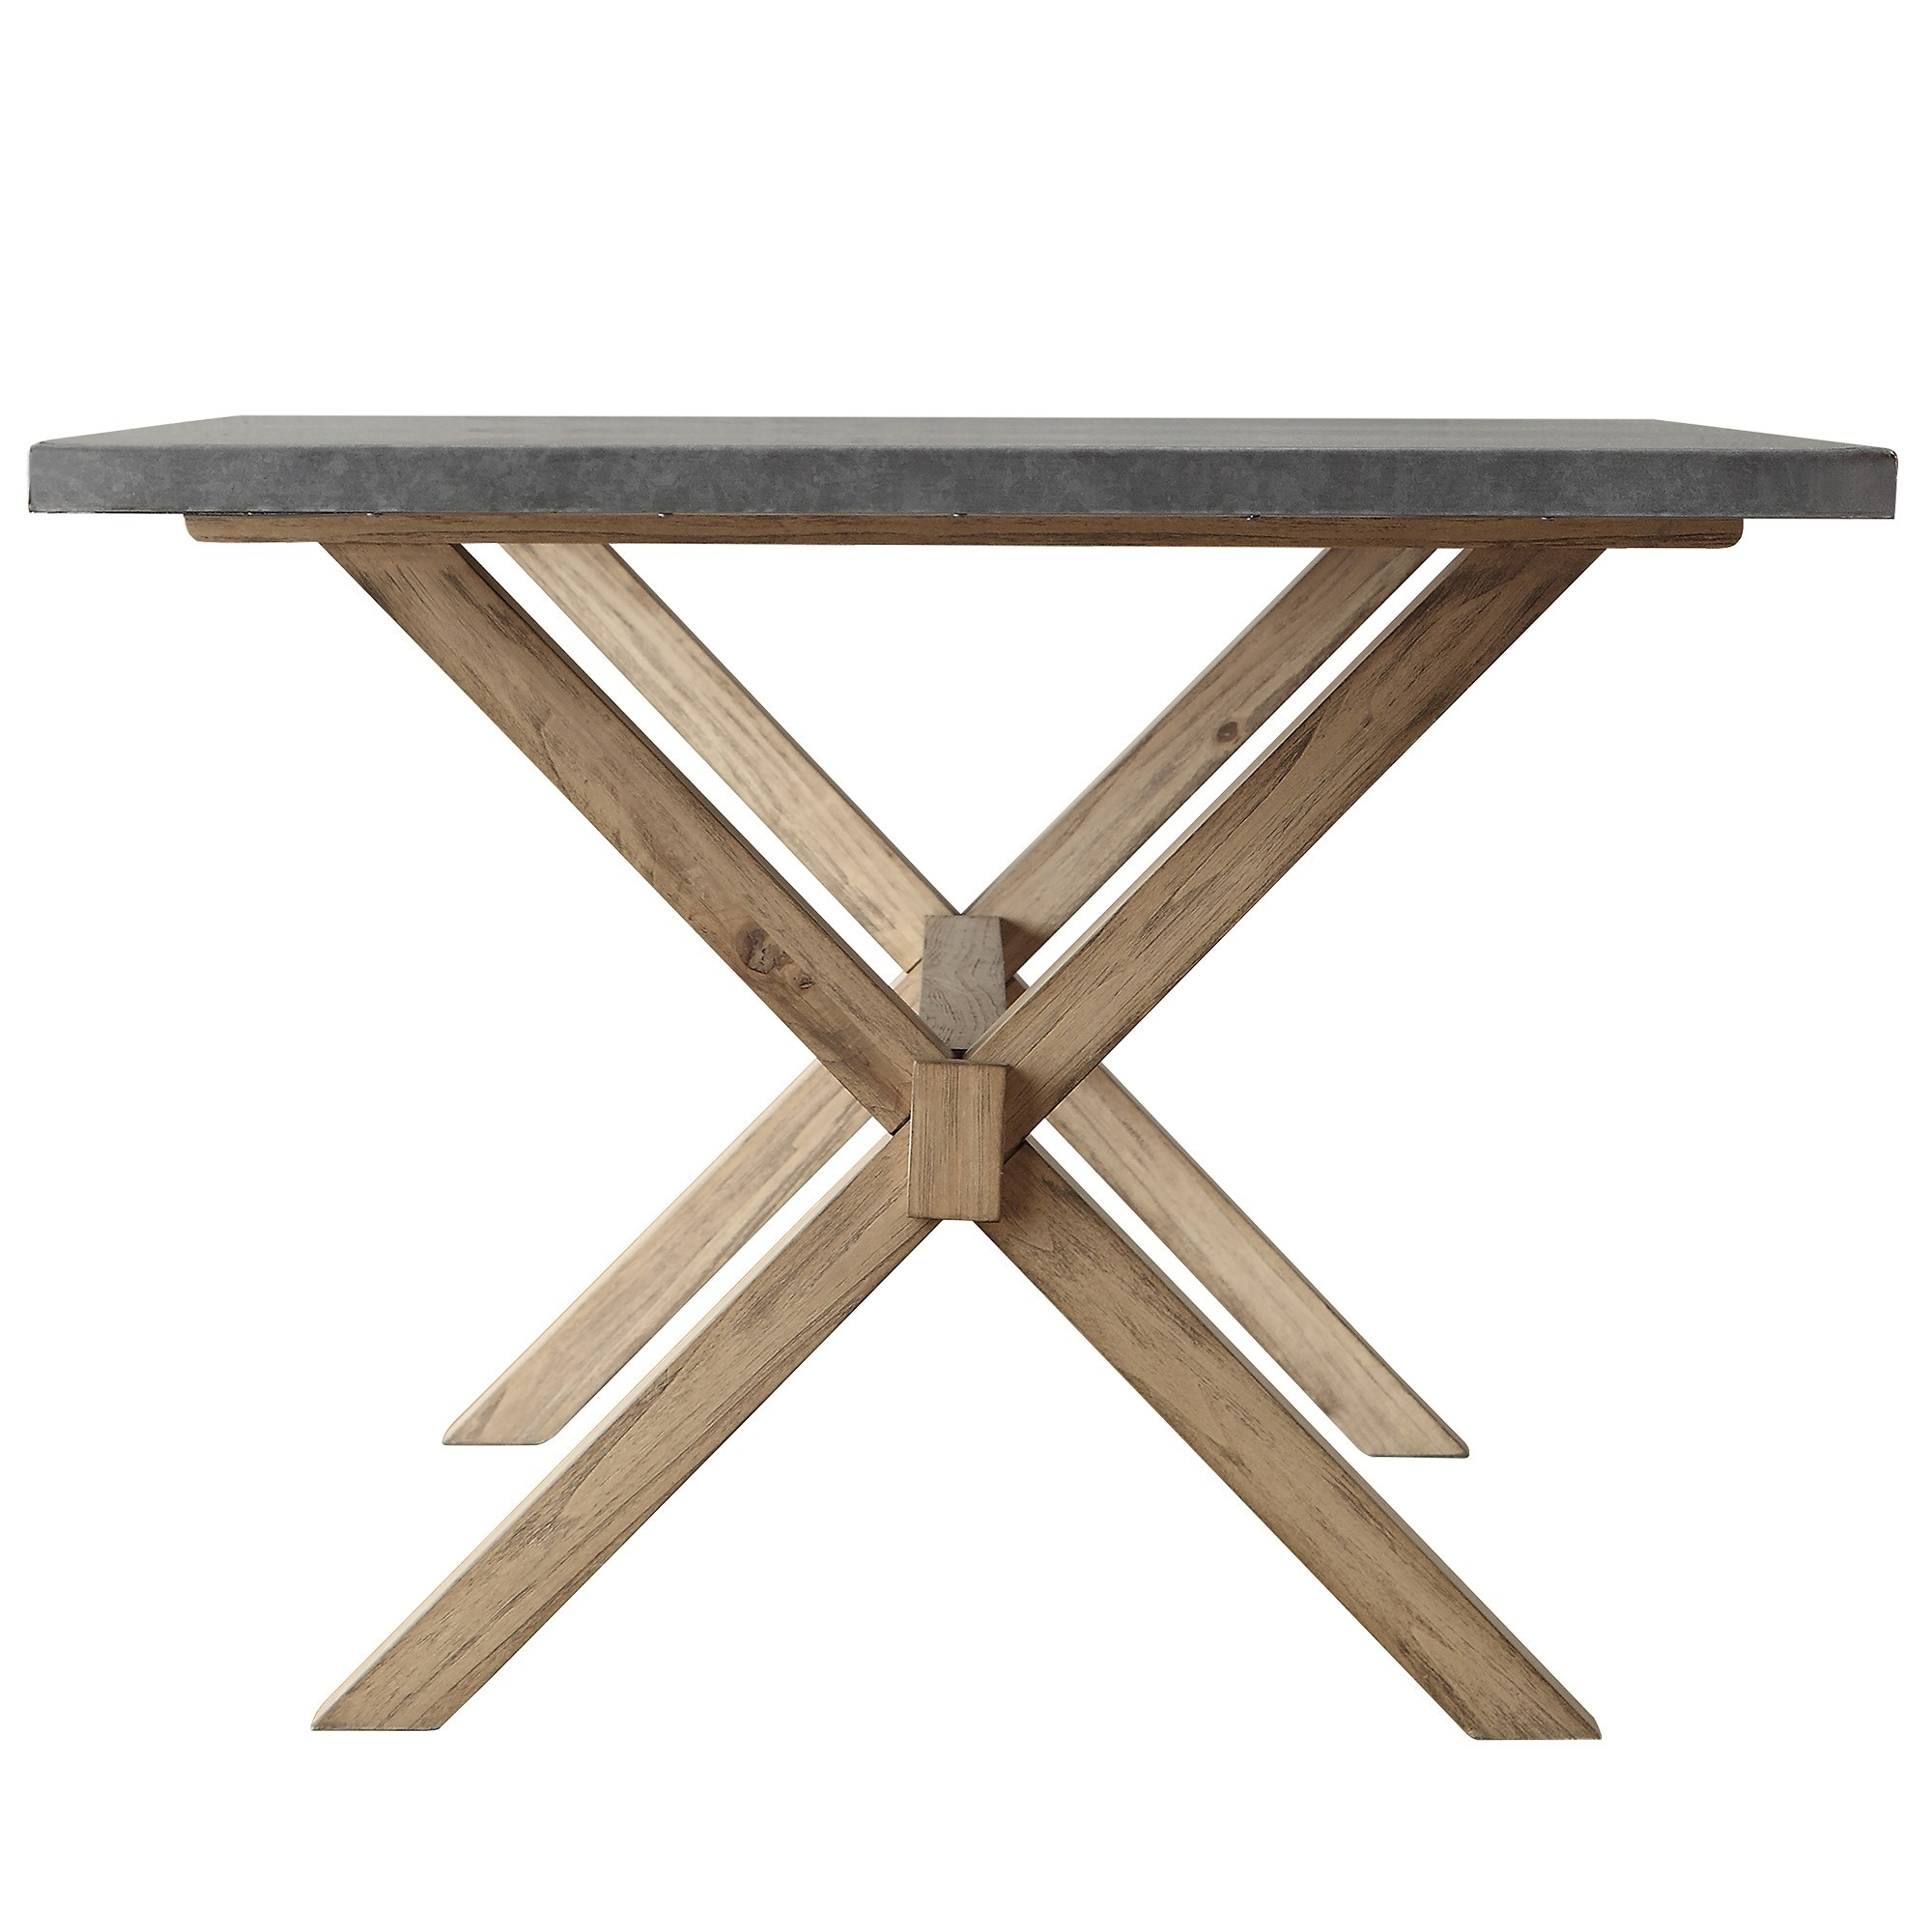 Aberdeen Zinc Top Weathered Oak Trestle Dining Table By Inspire Q Free Shipping Today 9814768